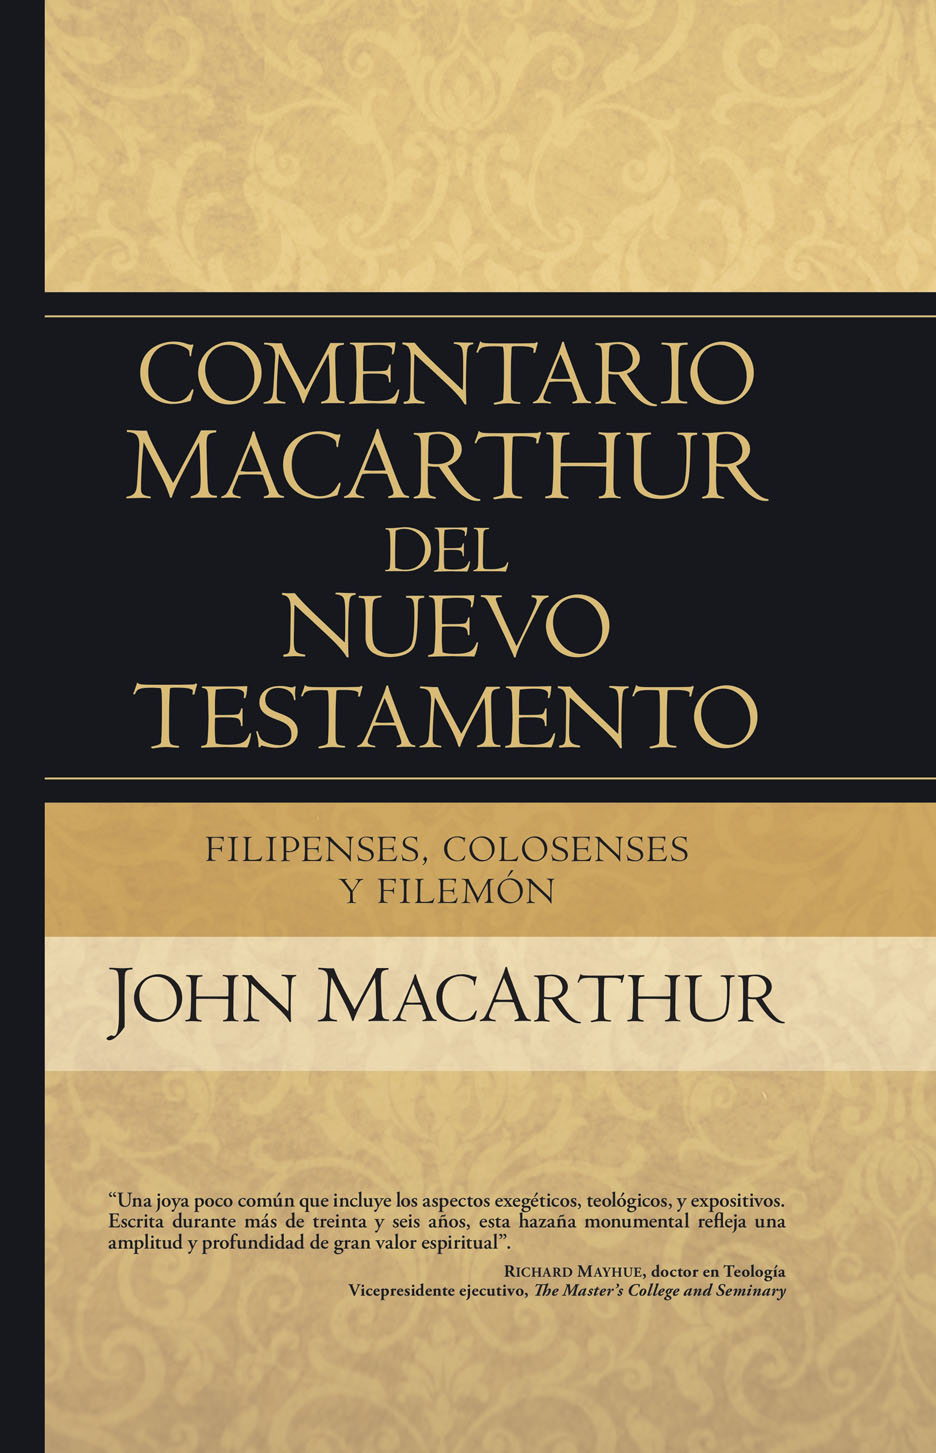 Filipenses Colosenses y Filemón - Comentario MacArthur del Nuevo Testamento